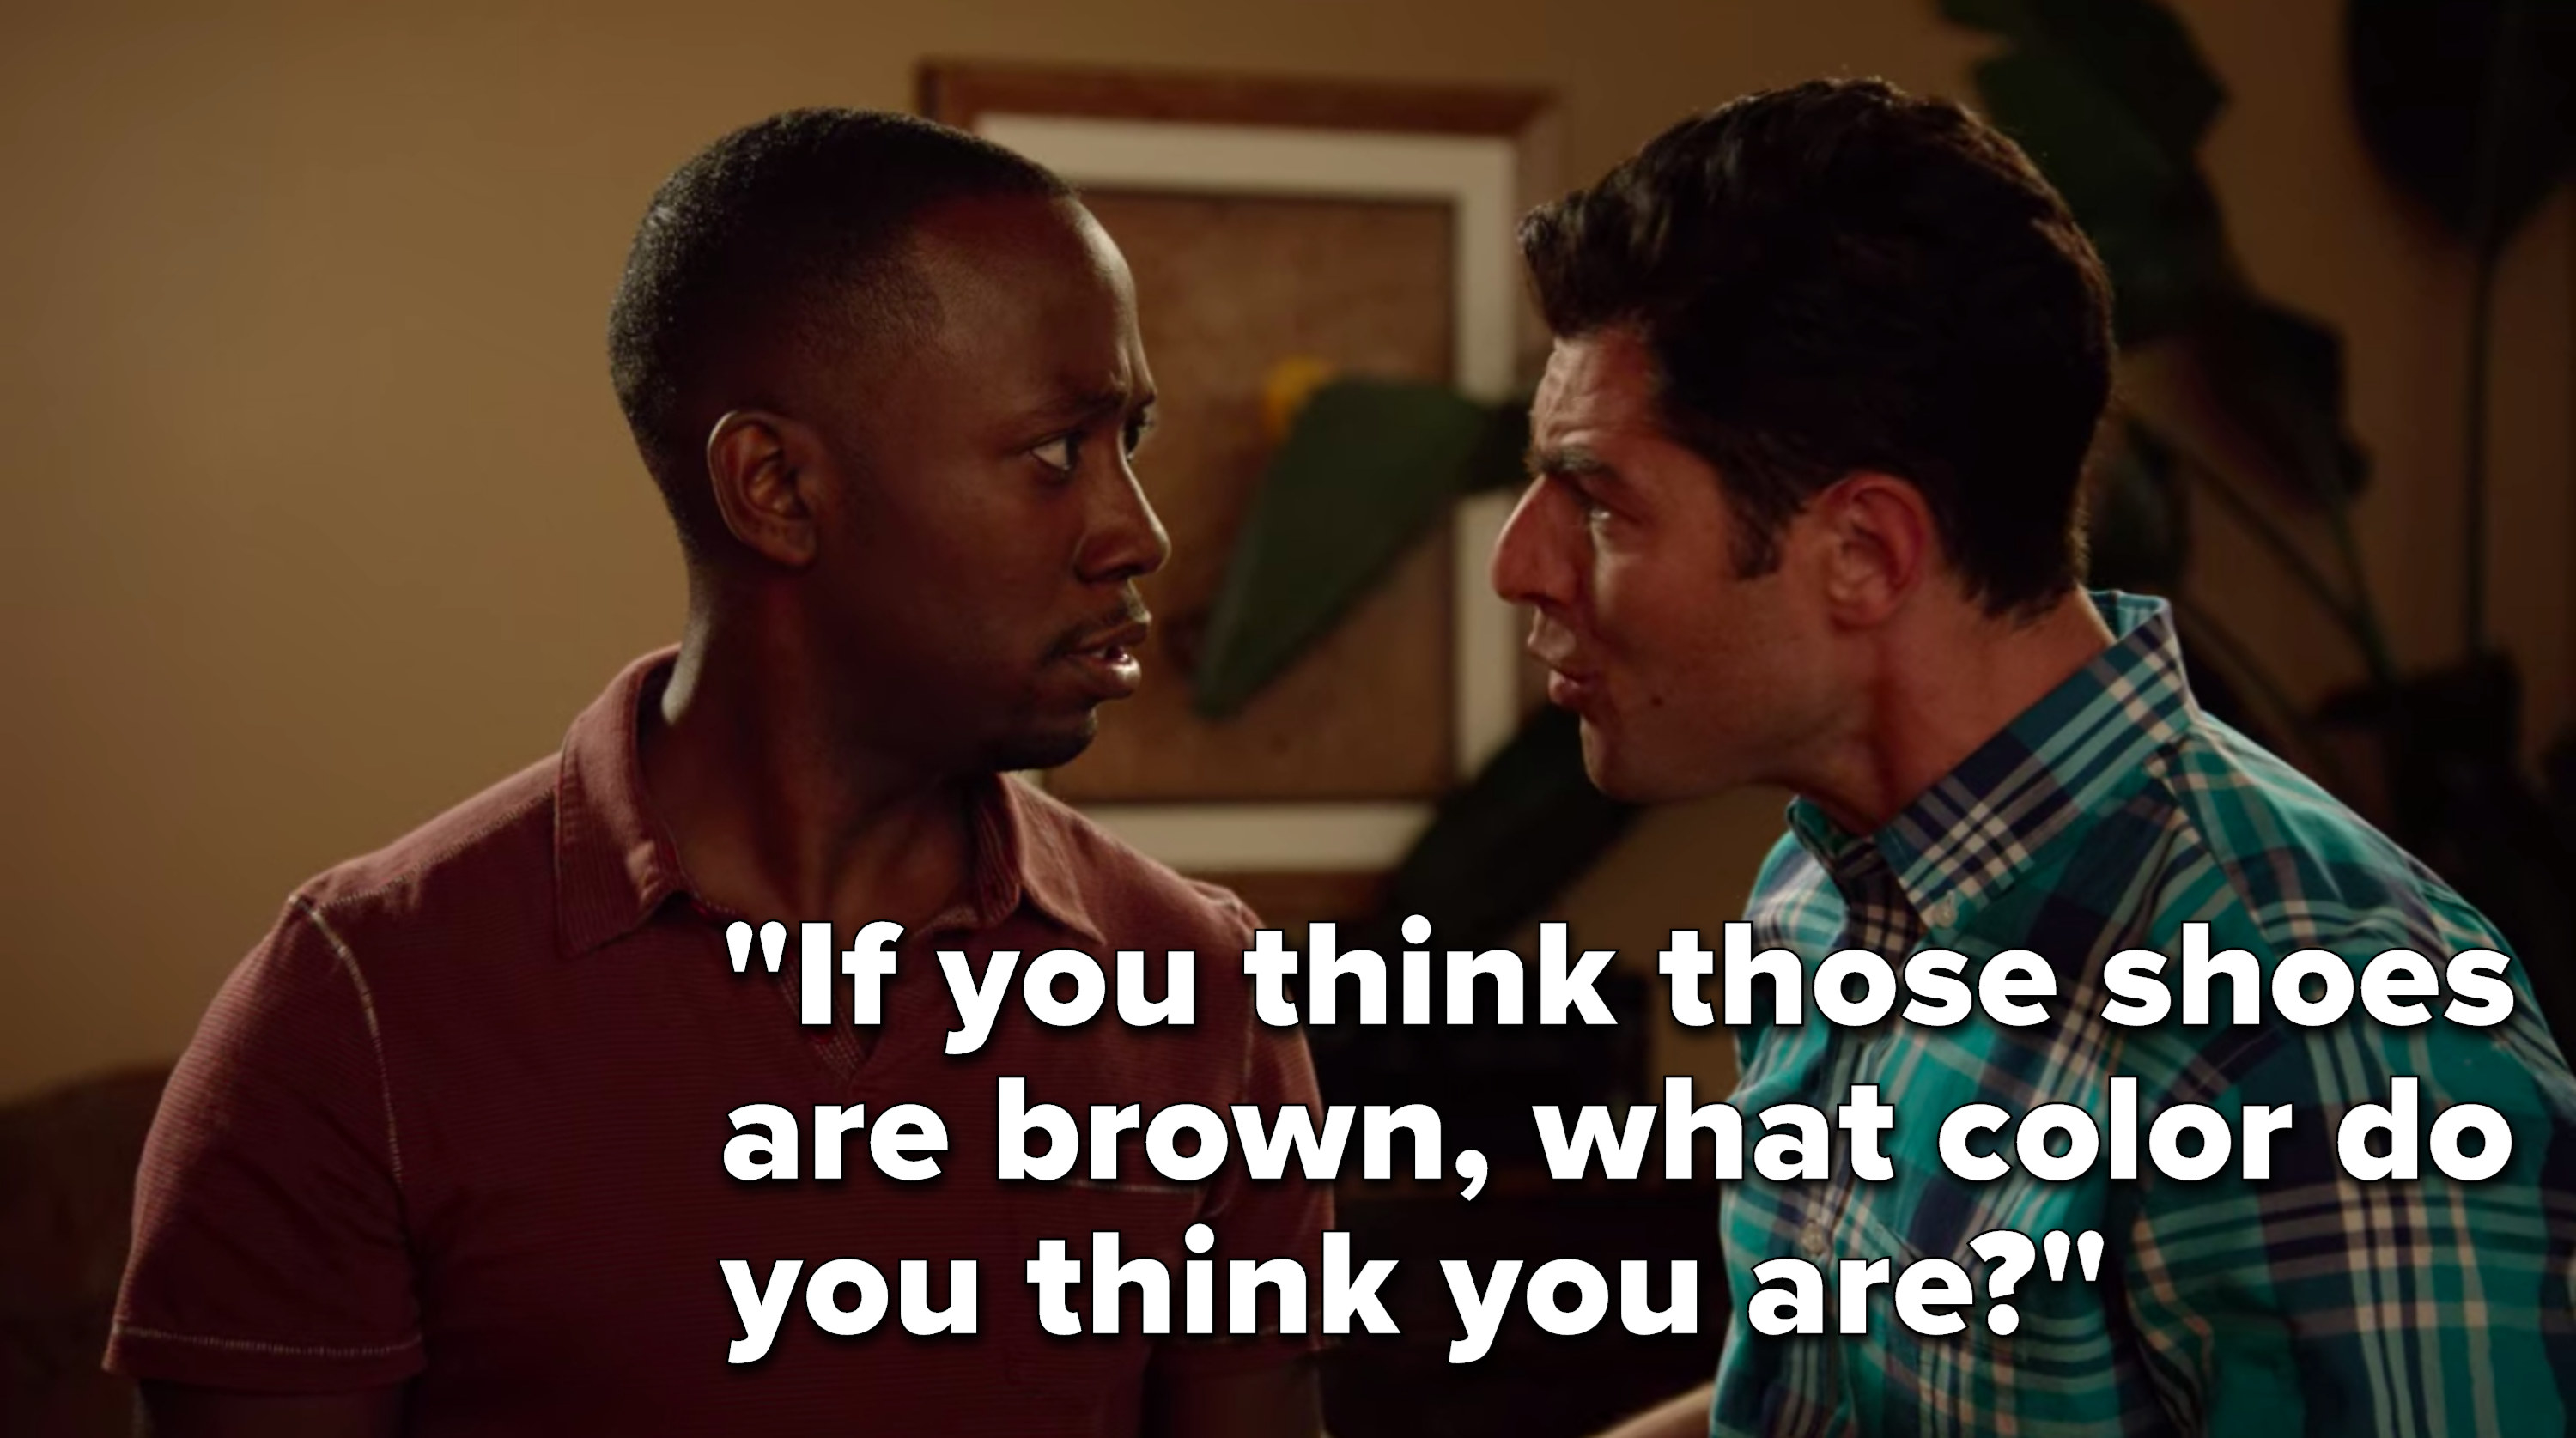 """Schmidt says, """"If you think those shoes are brown, what color do you think you are"""""""